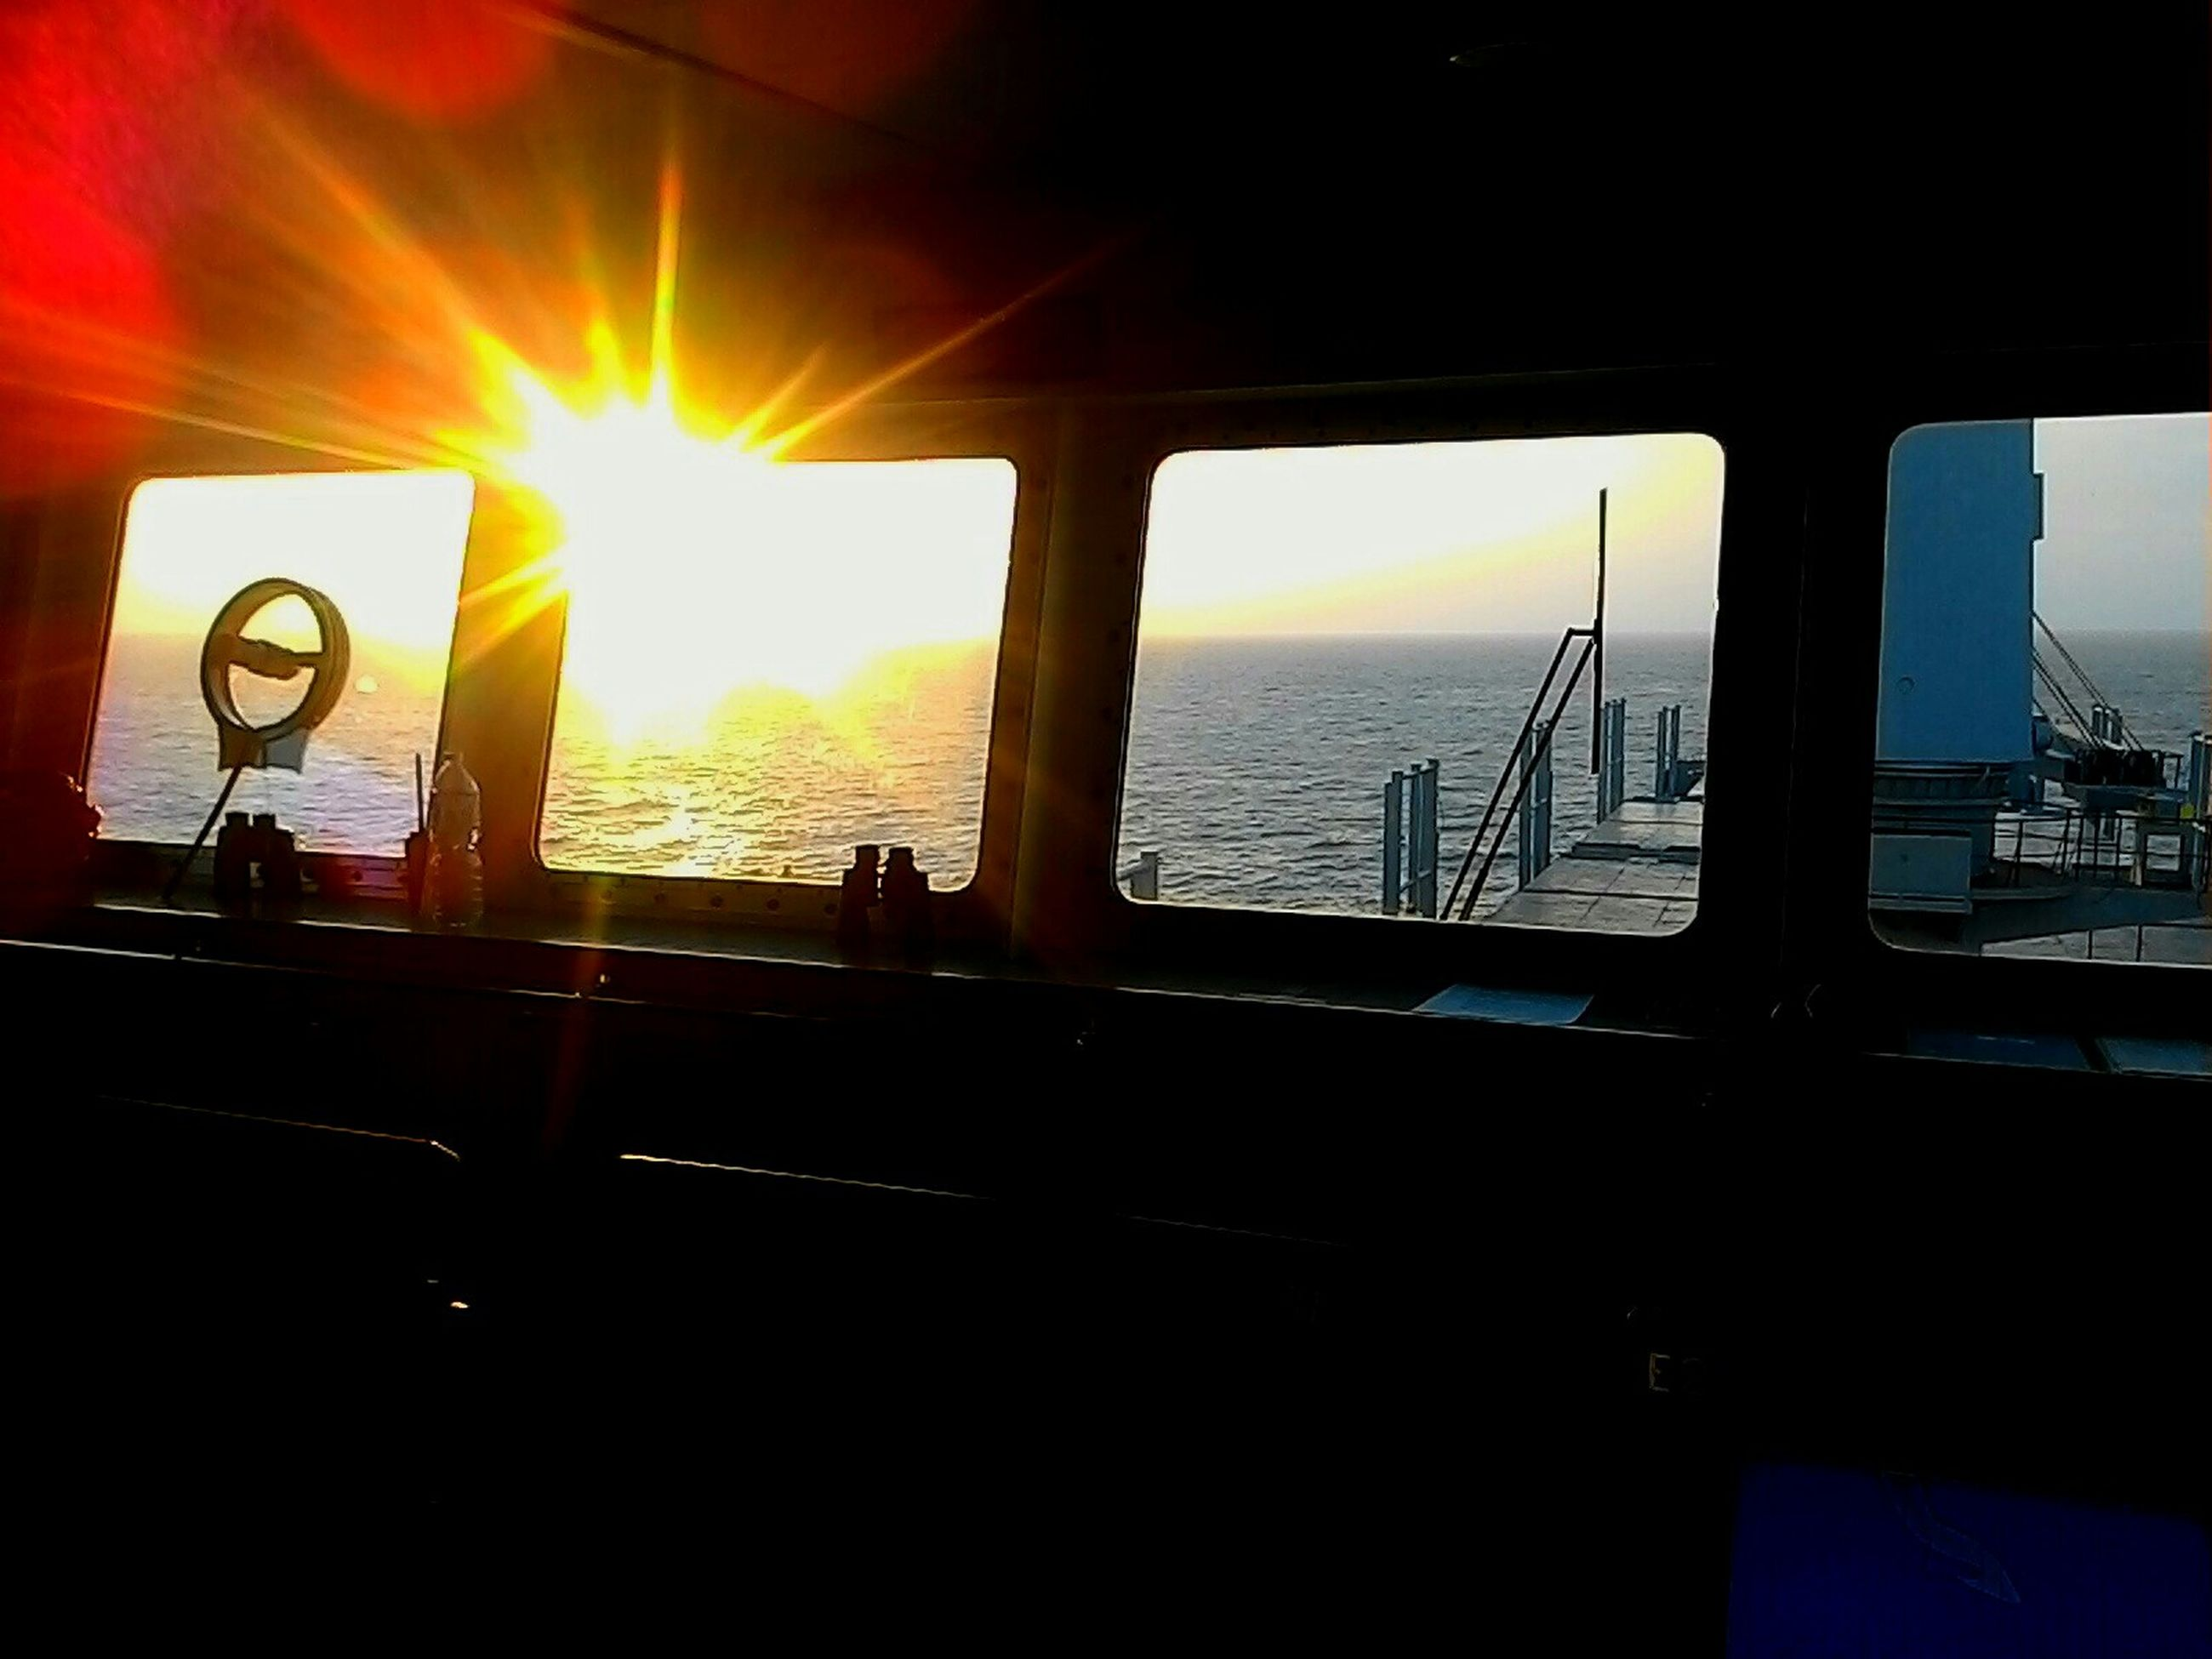 sea, indoors, sun, window, horizon over water, built structure, sunlight, sunset, architecture, sky, glass - material, water, transportation, railing, sunbeam, transparent, reflection, no people, travel, nature